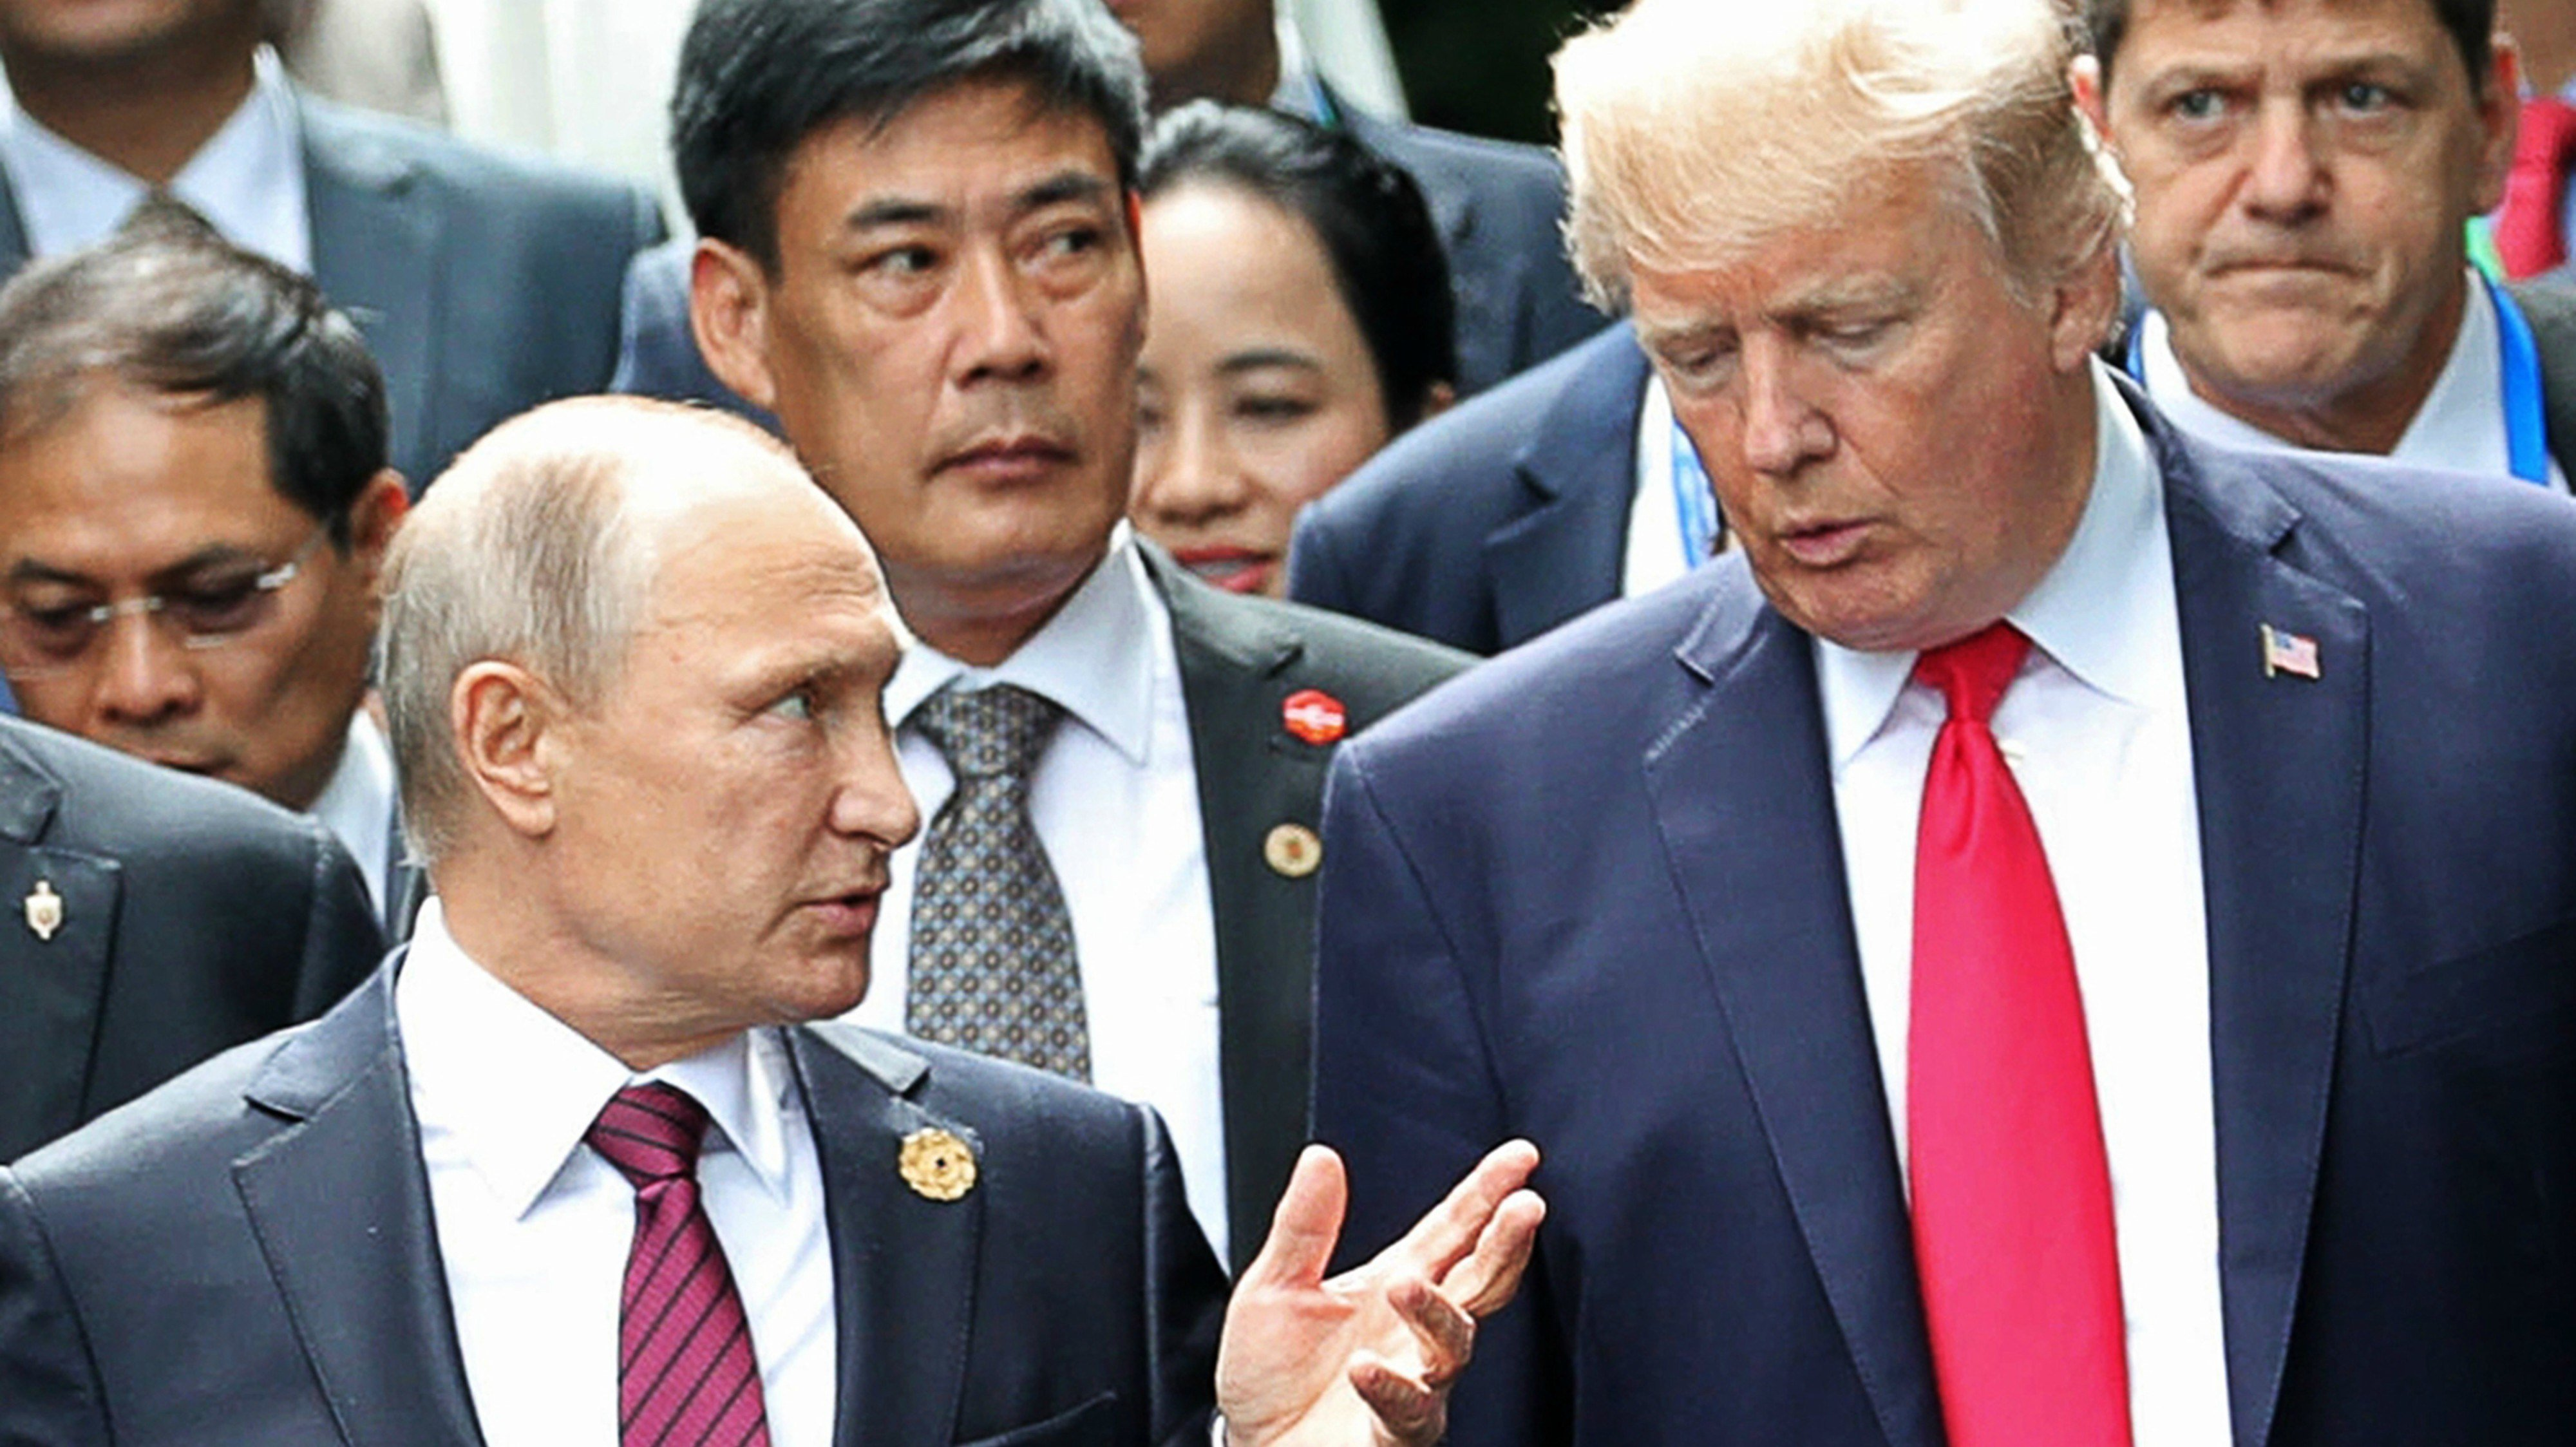 In this Nov. 11, 2017, file photo, President Donald Trump, right, and Russia President Vladimir Putin talk during the family photo session at the APEC Summit in Danang.  (Mikhail Klimentyev, Sputnik, Kremlin Pool Photo via AP)